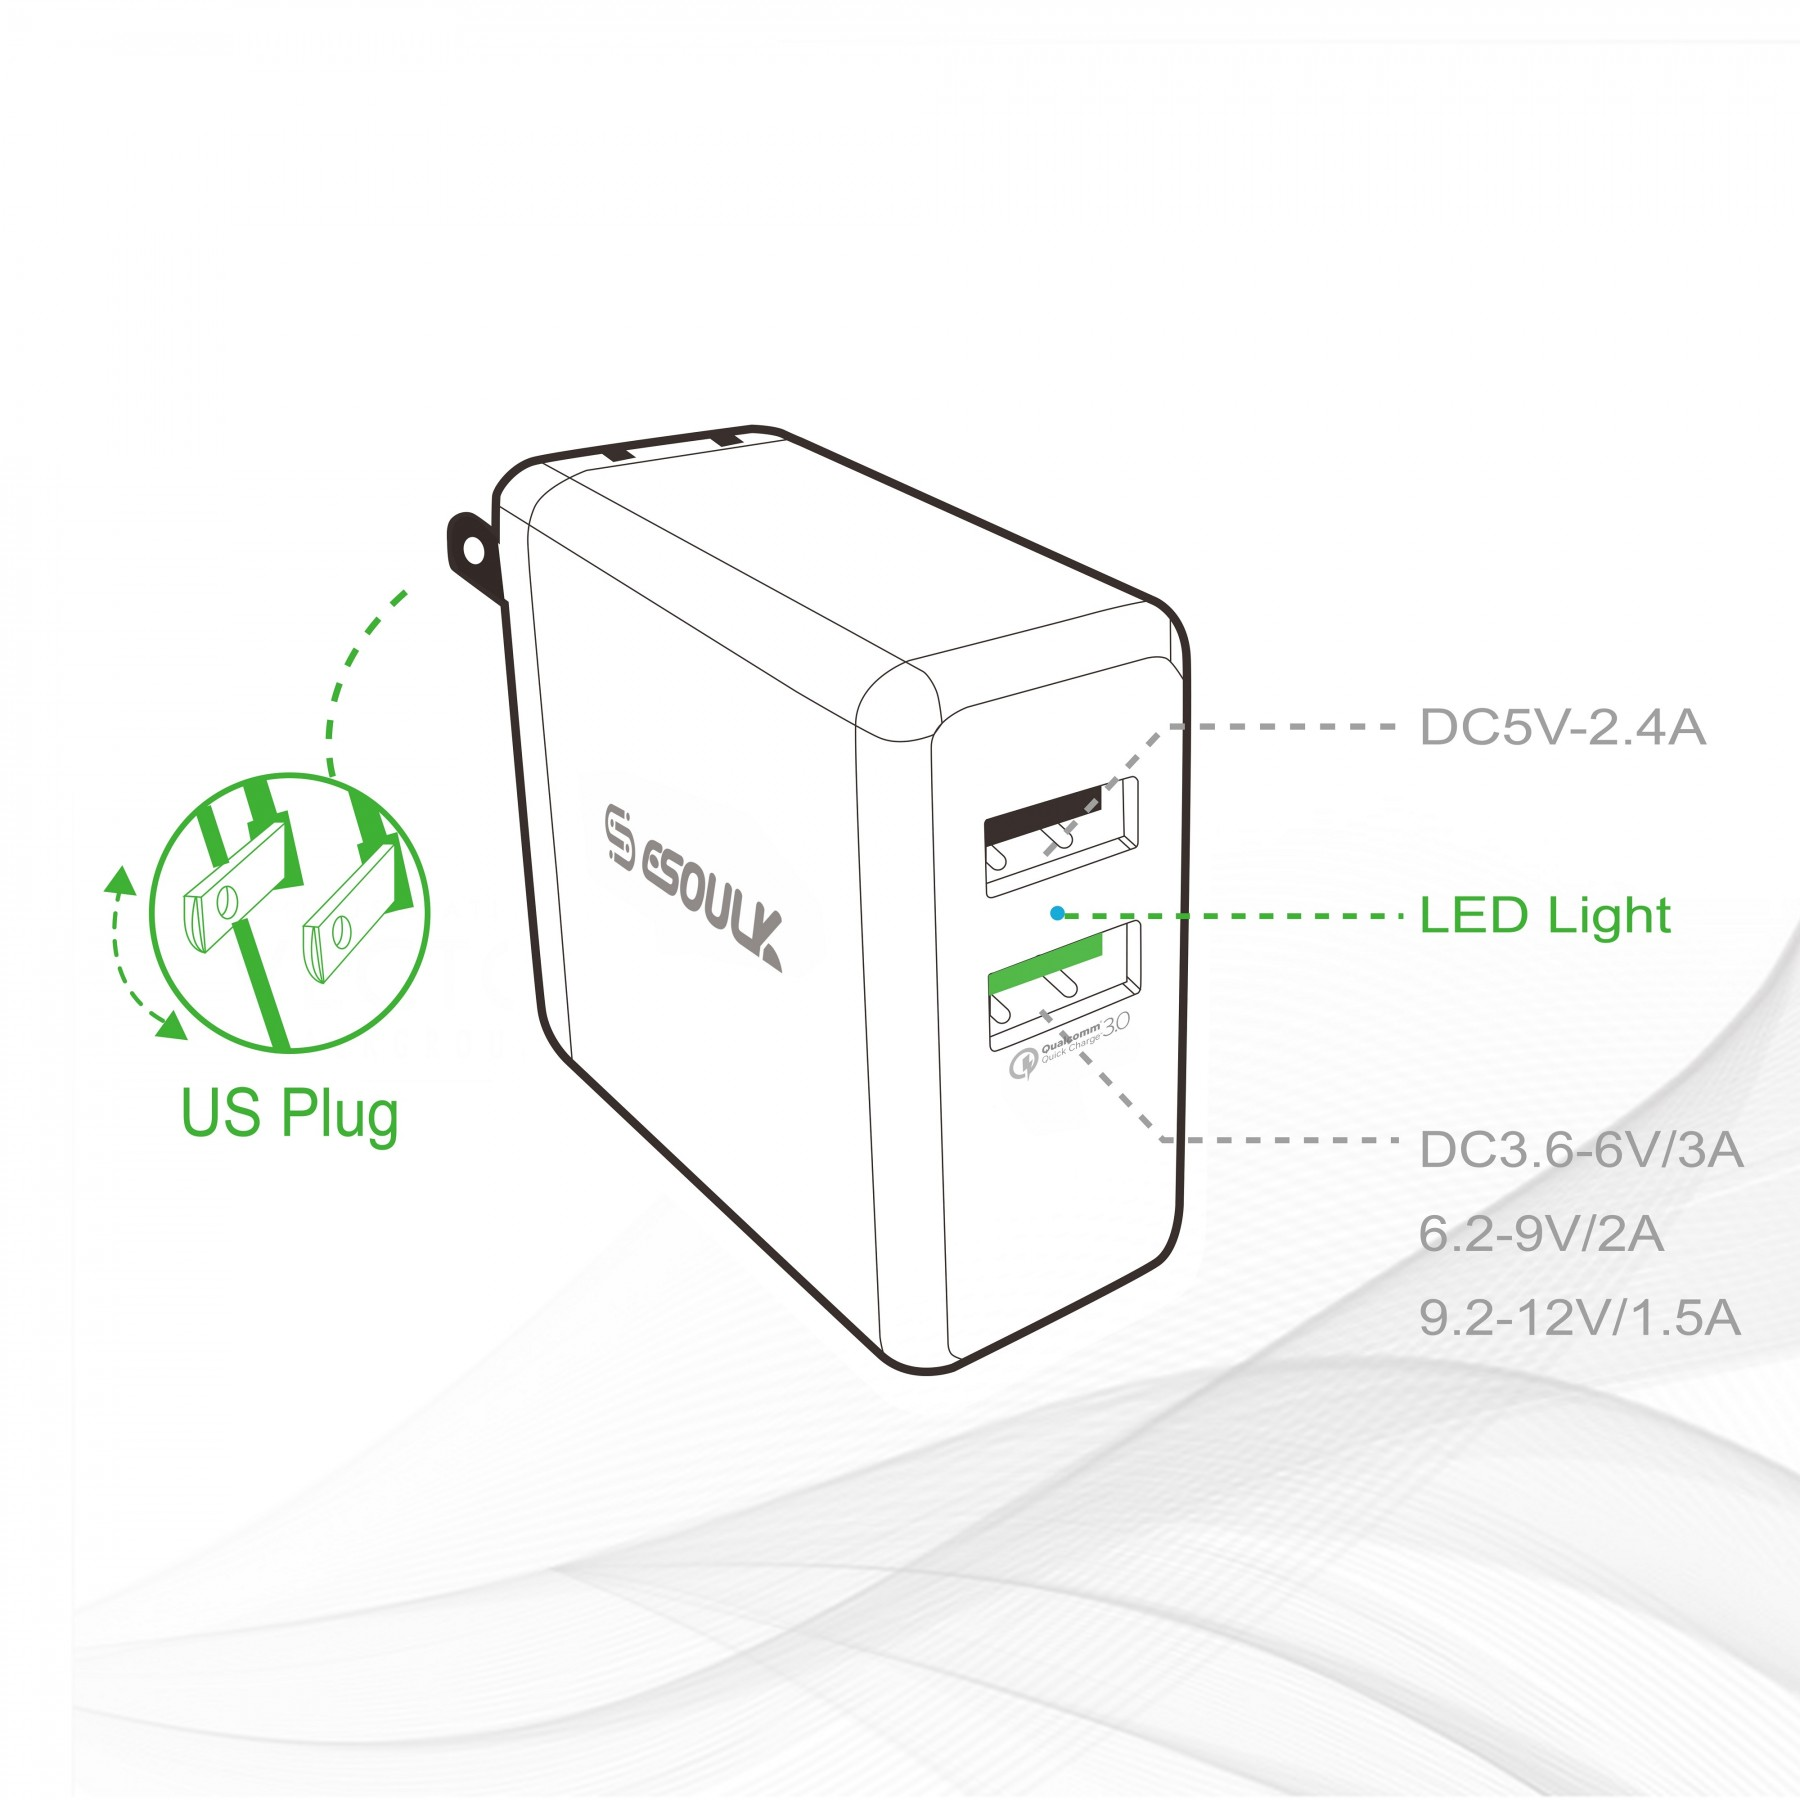 Esoulk Dual Usb 2 4a Wall Charger Micro Usb Charger Cable